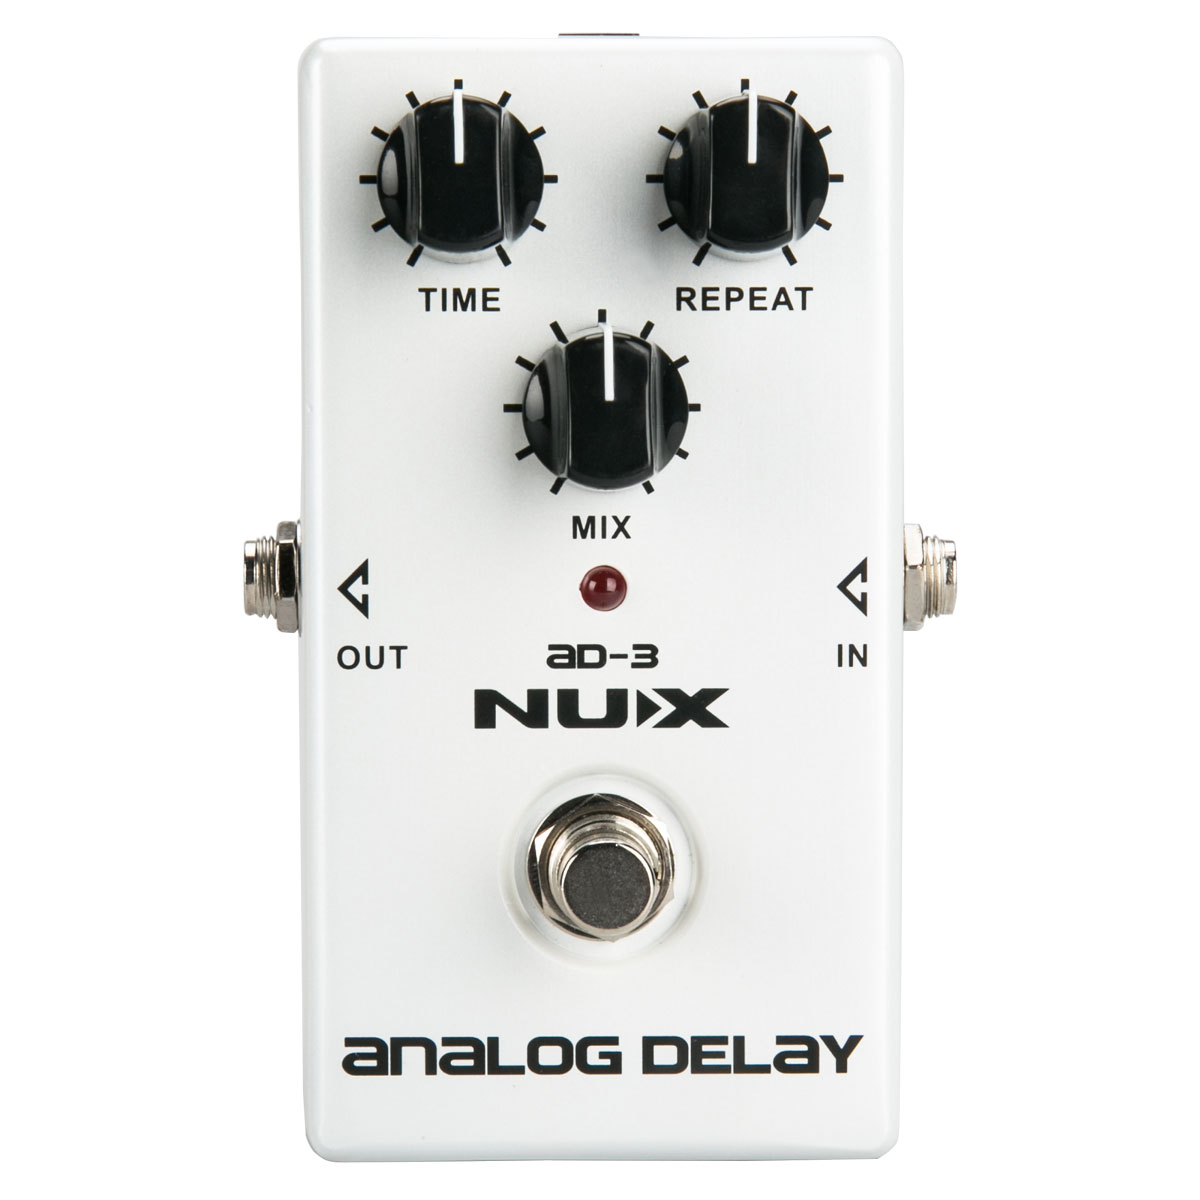 NUX AD3 Guitar Effects Pedal Analog Delay Effect Low Noise BBD Delay Circuit 20 300ms Delay